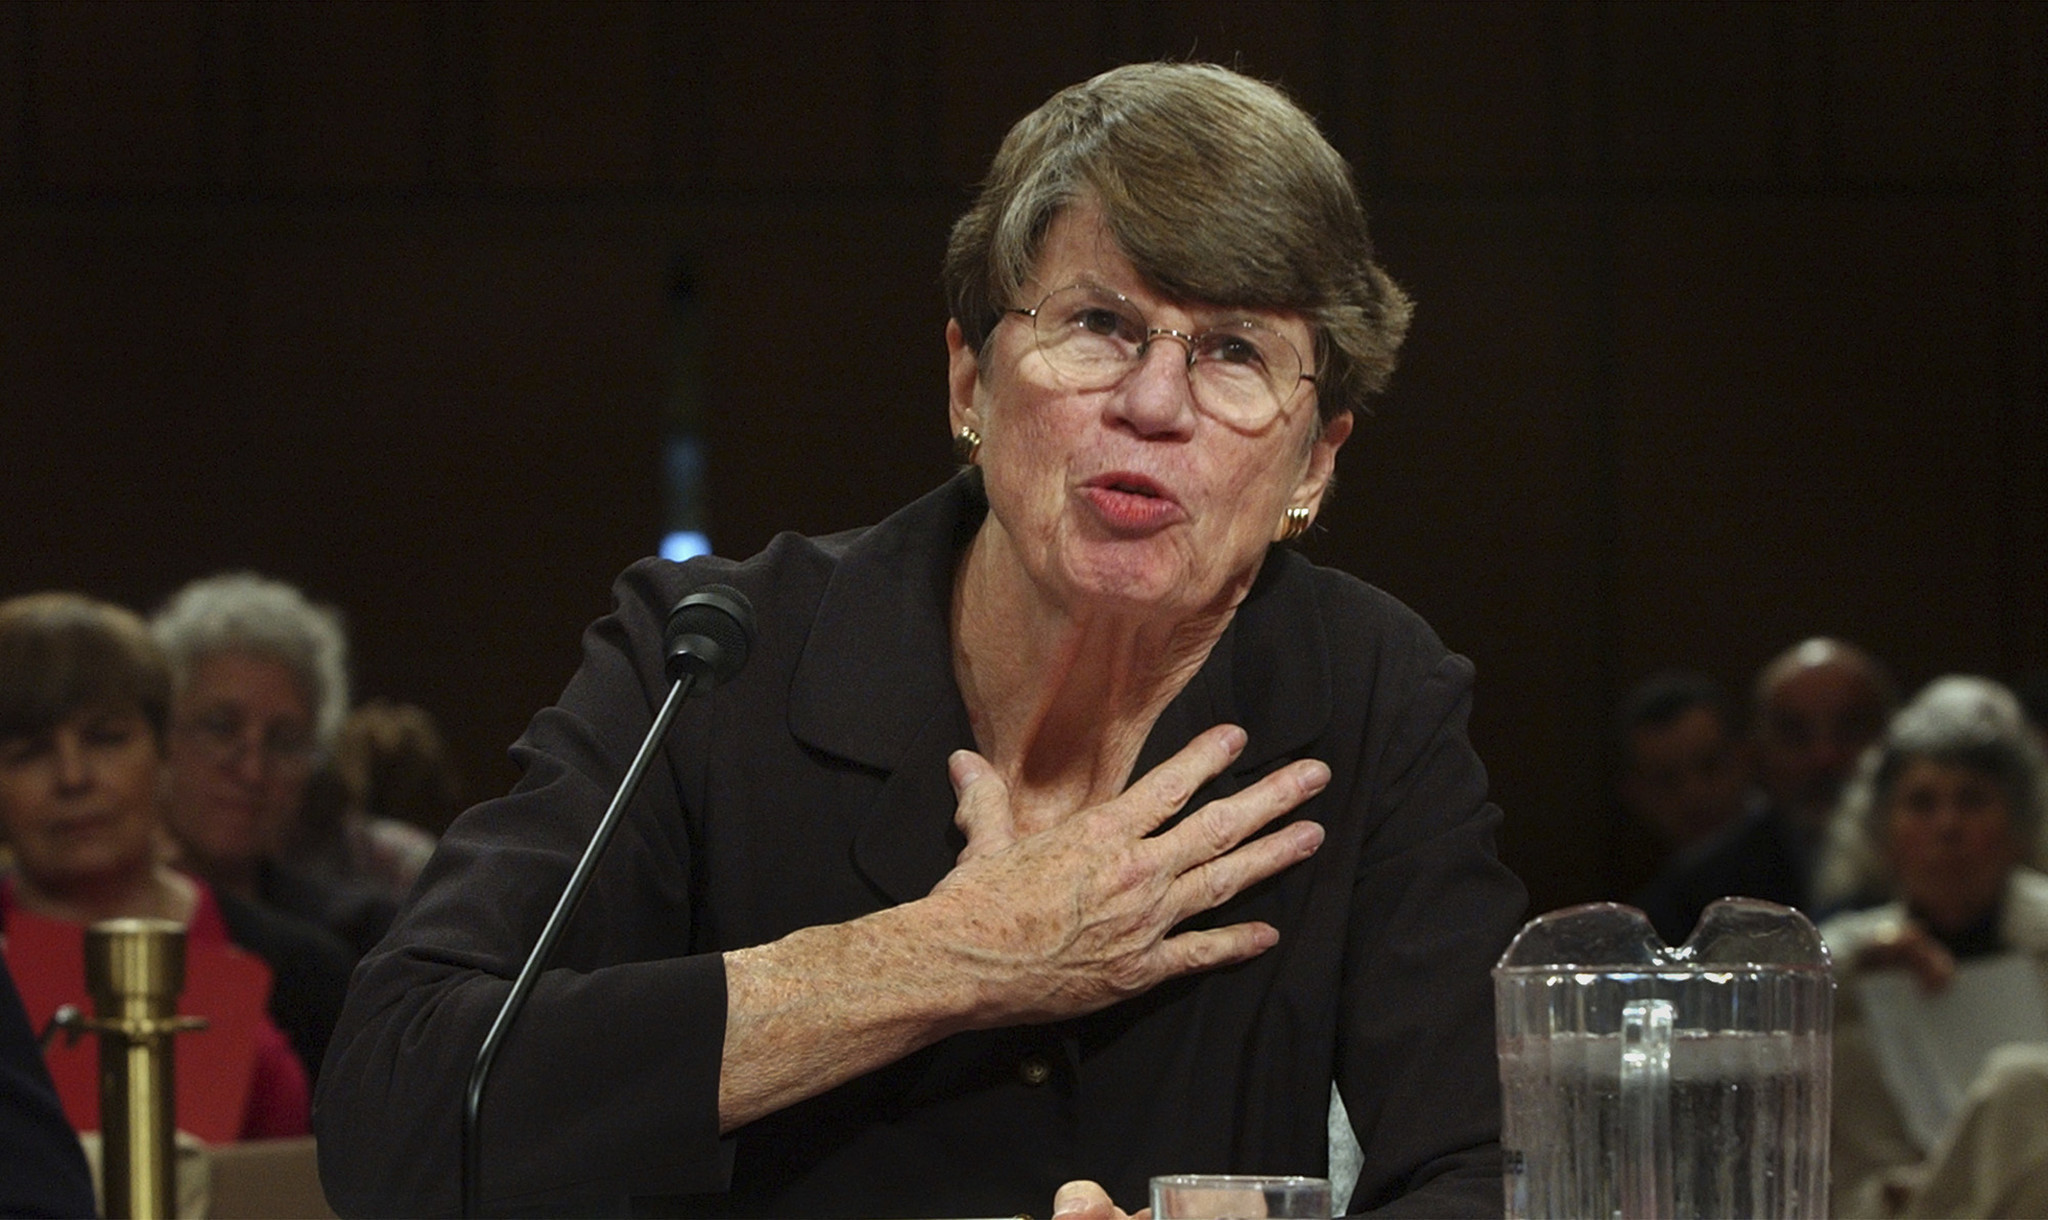 os-ed-janet-reno-role-model-for-women-lawyers110816-20161108.jpg